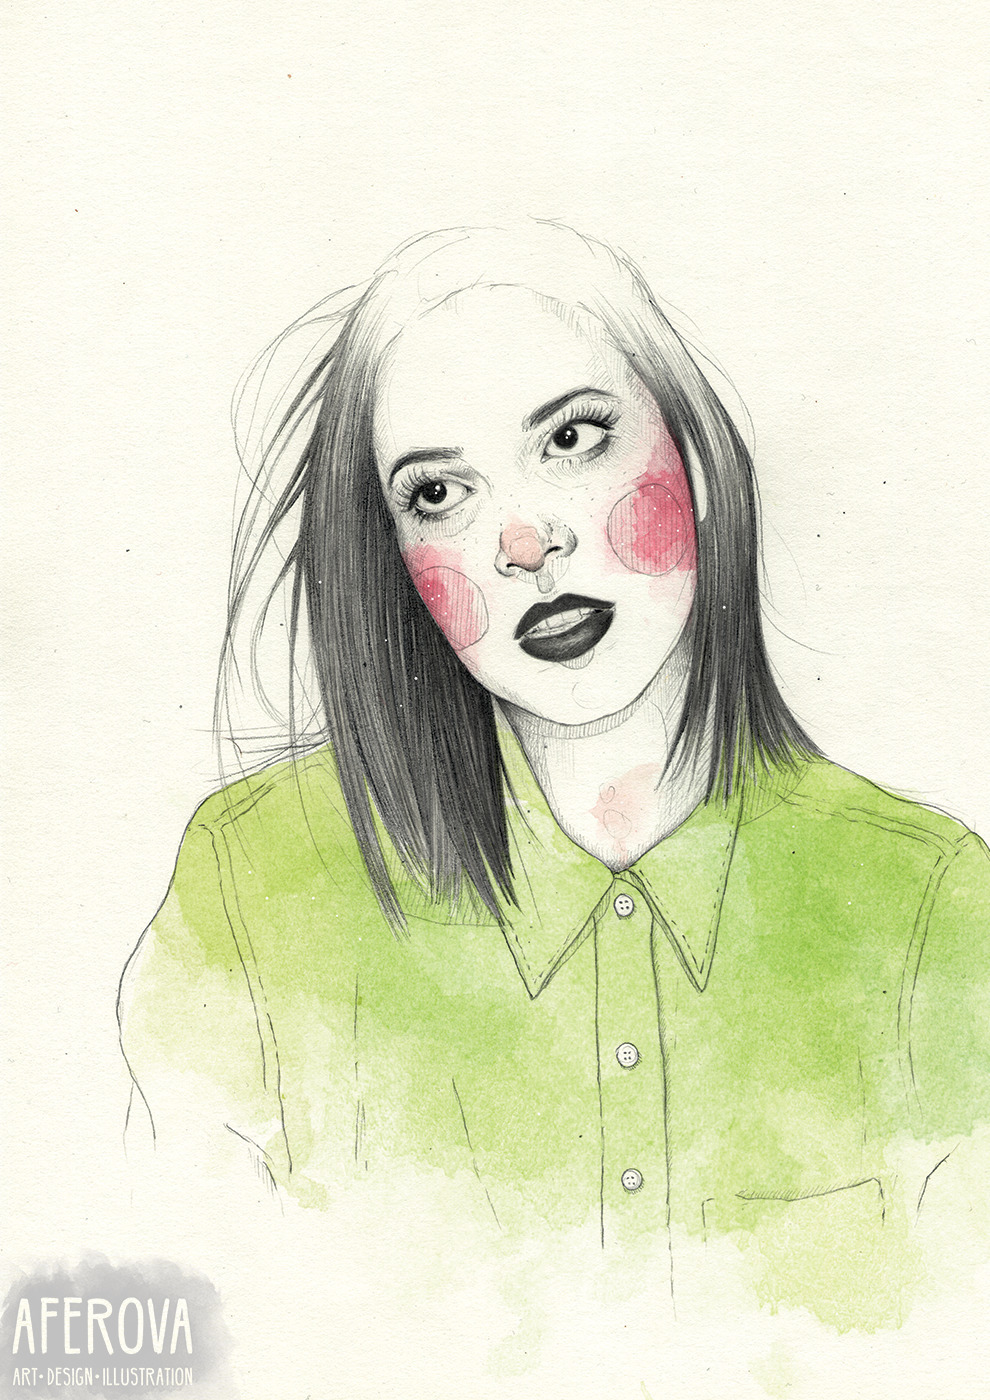 Sophia - illustration, drawing, portrait - aferova | ello